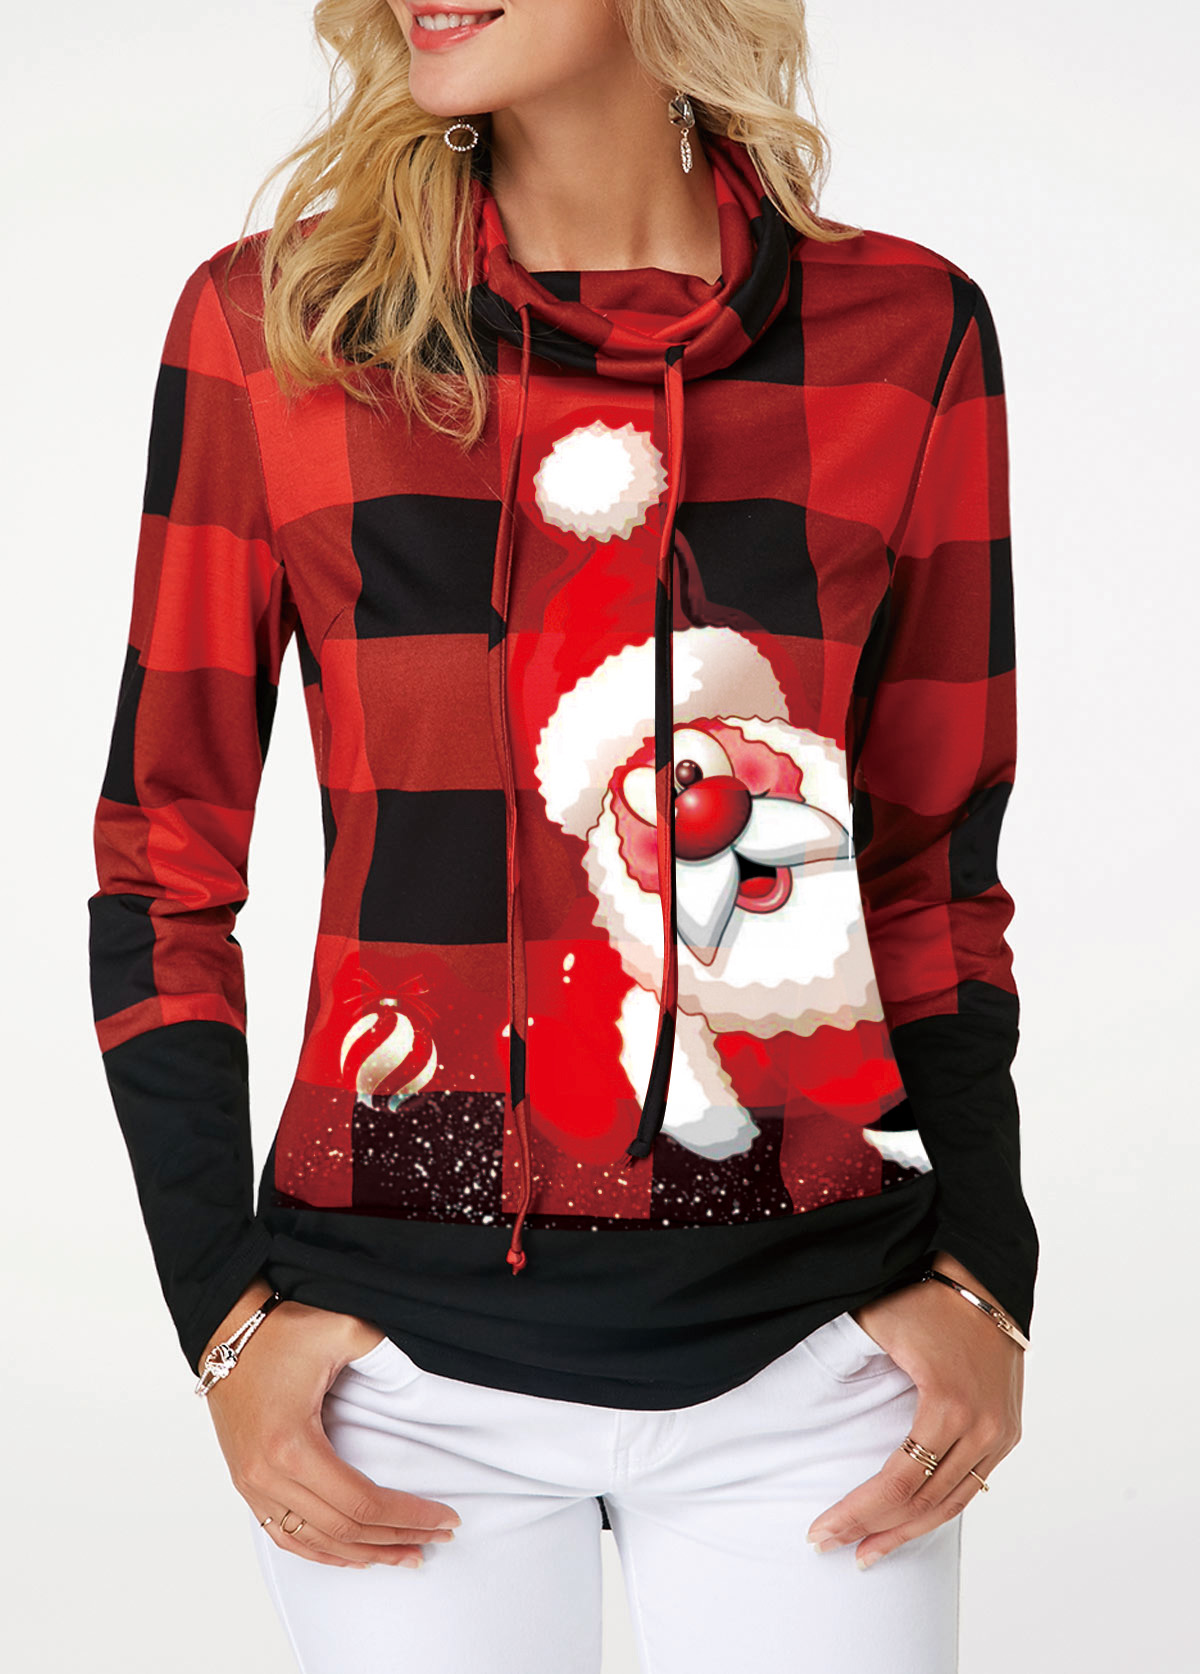 ROTITA Drawstring Detail Santa Claus and Plaid Print Sweatshirt